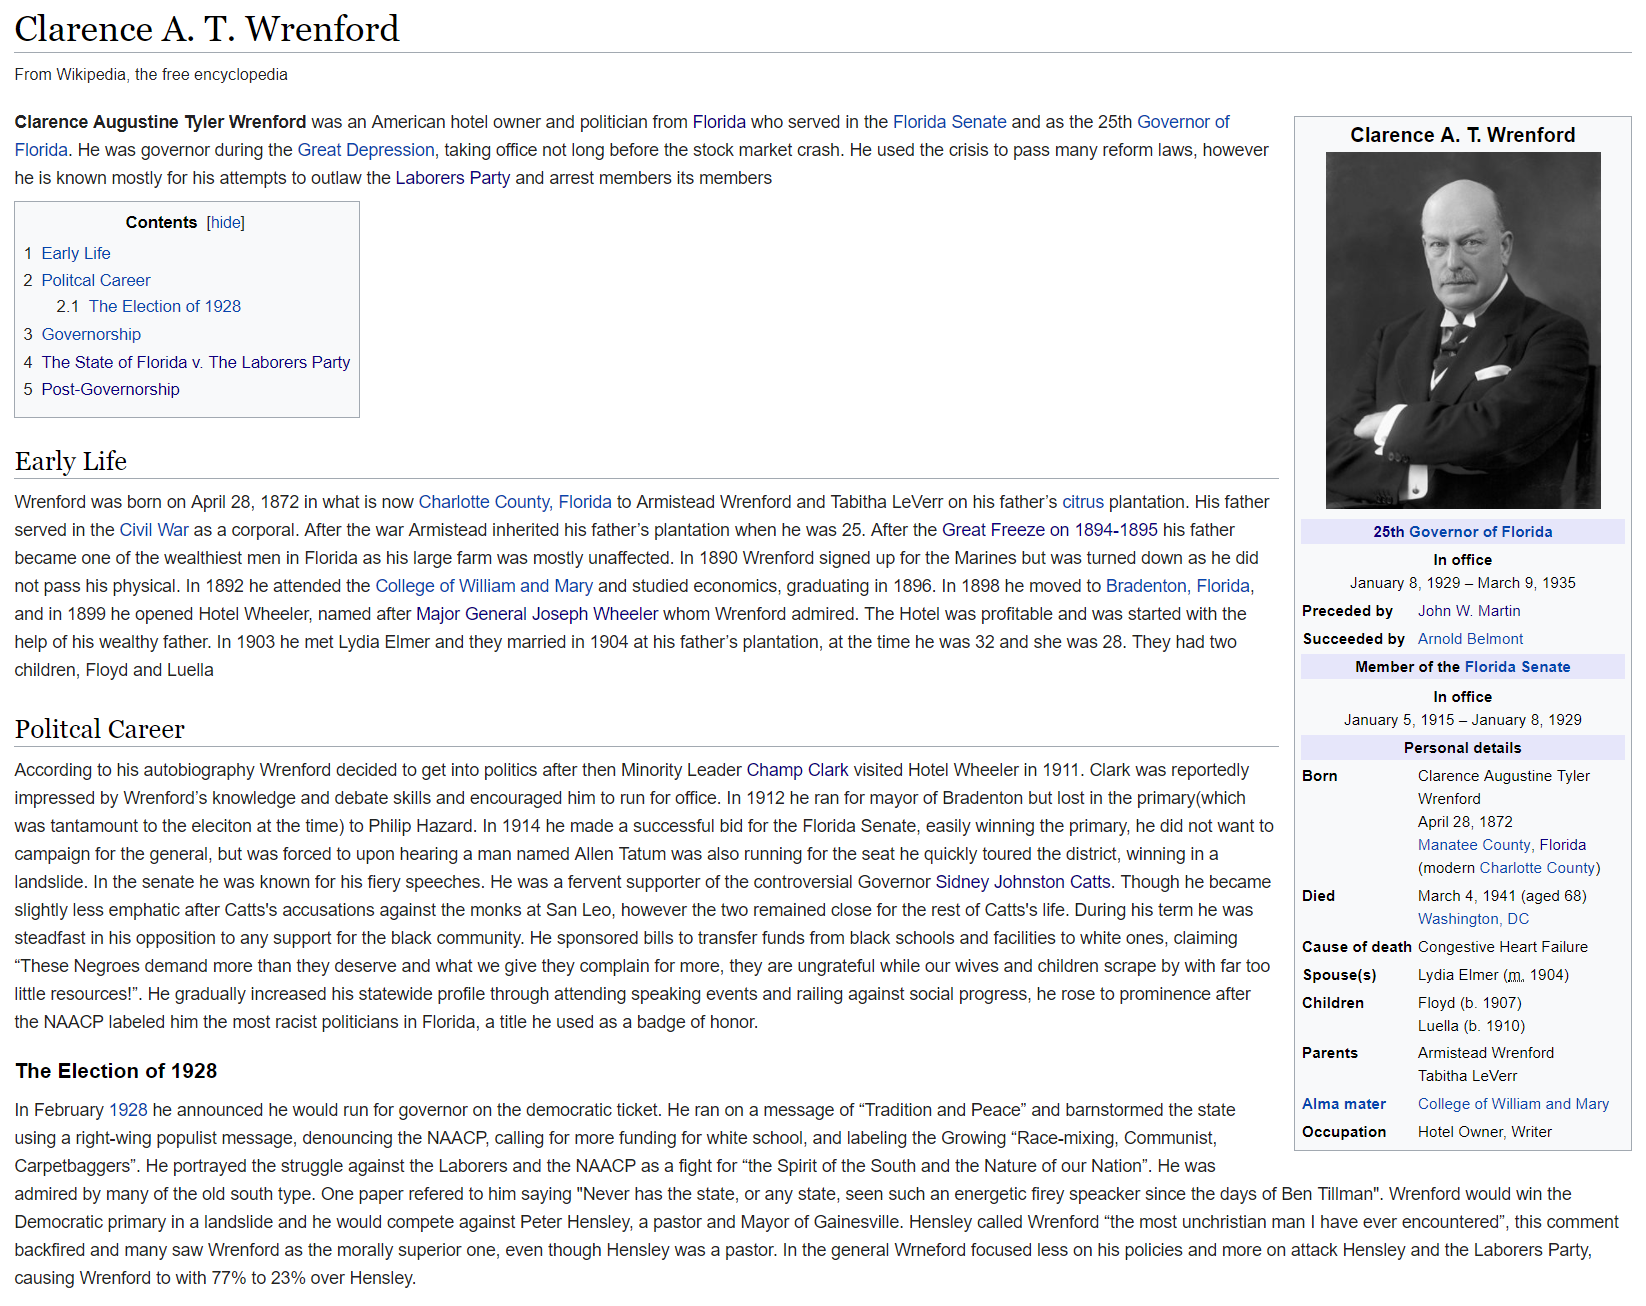 Clarence A T Wrenford Wiki 1.PNG